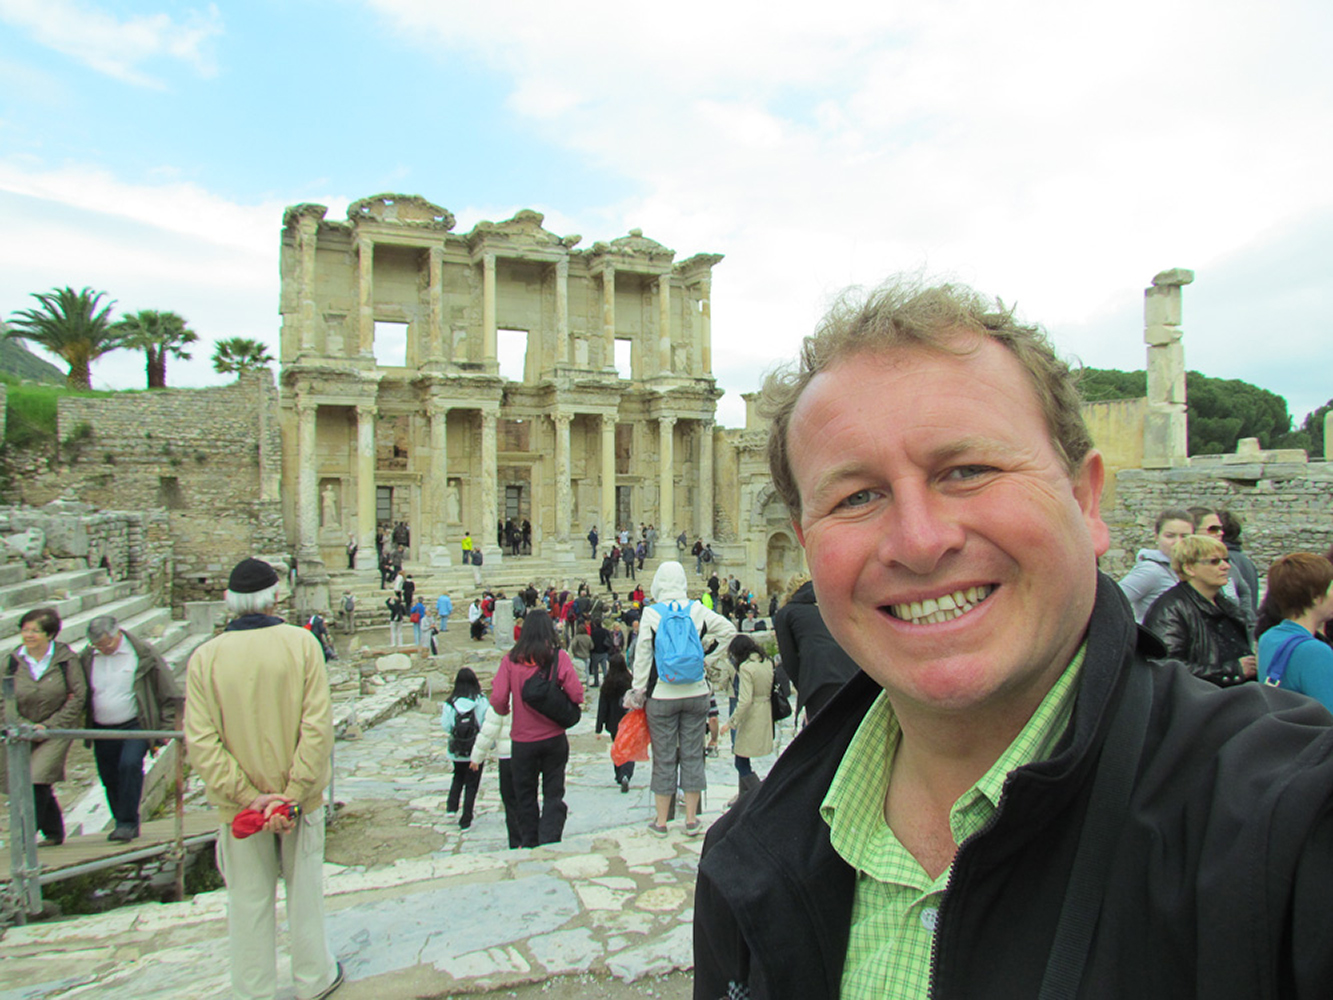 Ephesus, Turkey. The Celsus library in this vast ancient city